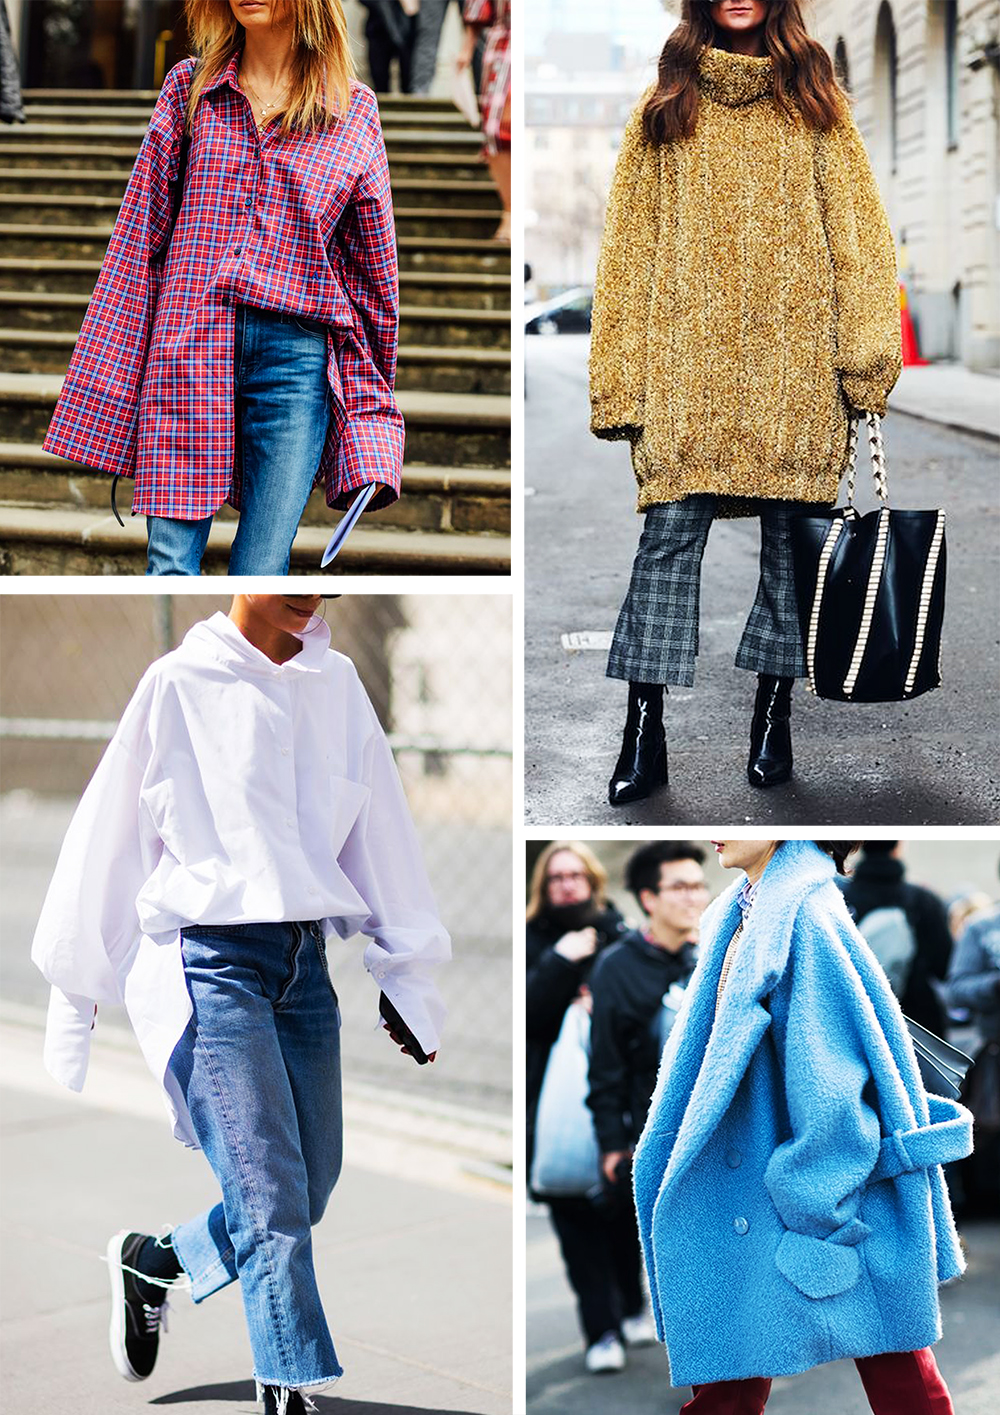 Latest Fashion Trends, Fashion, Style, Oversized fashion, Photography-7